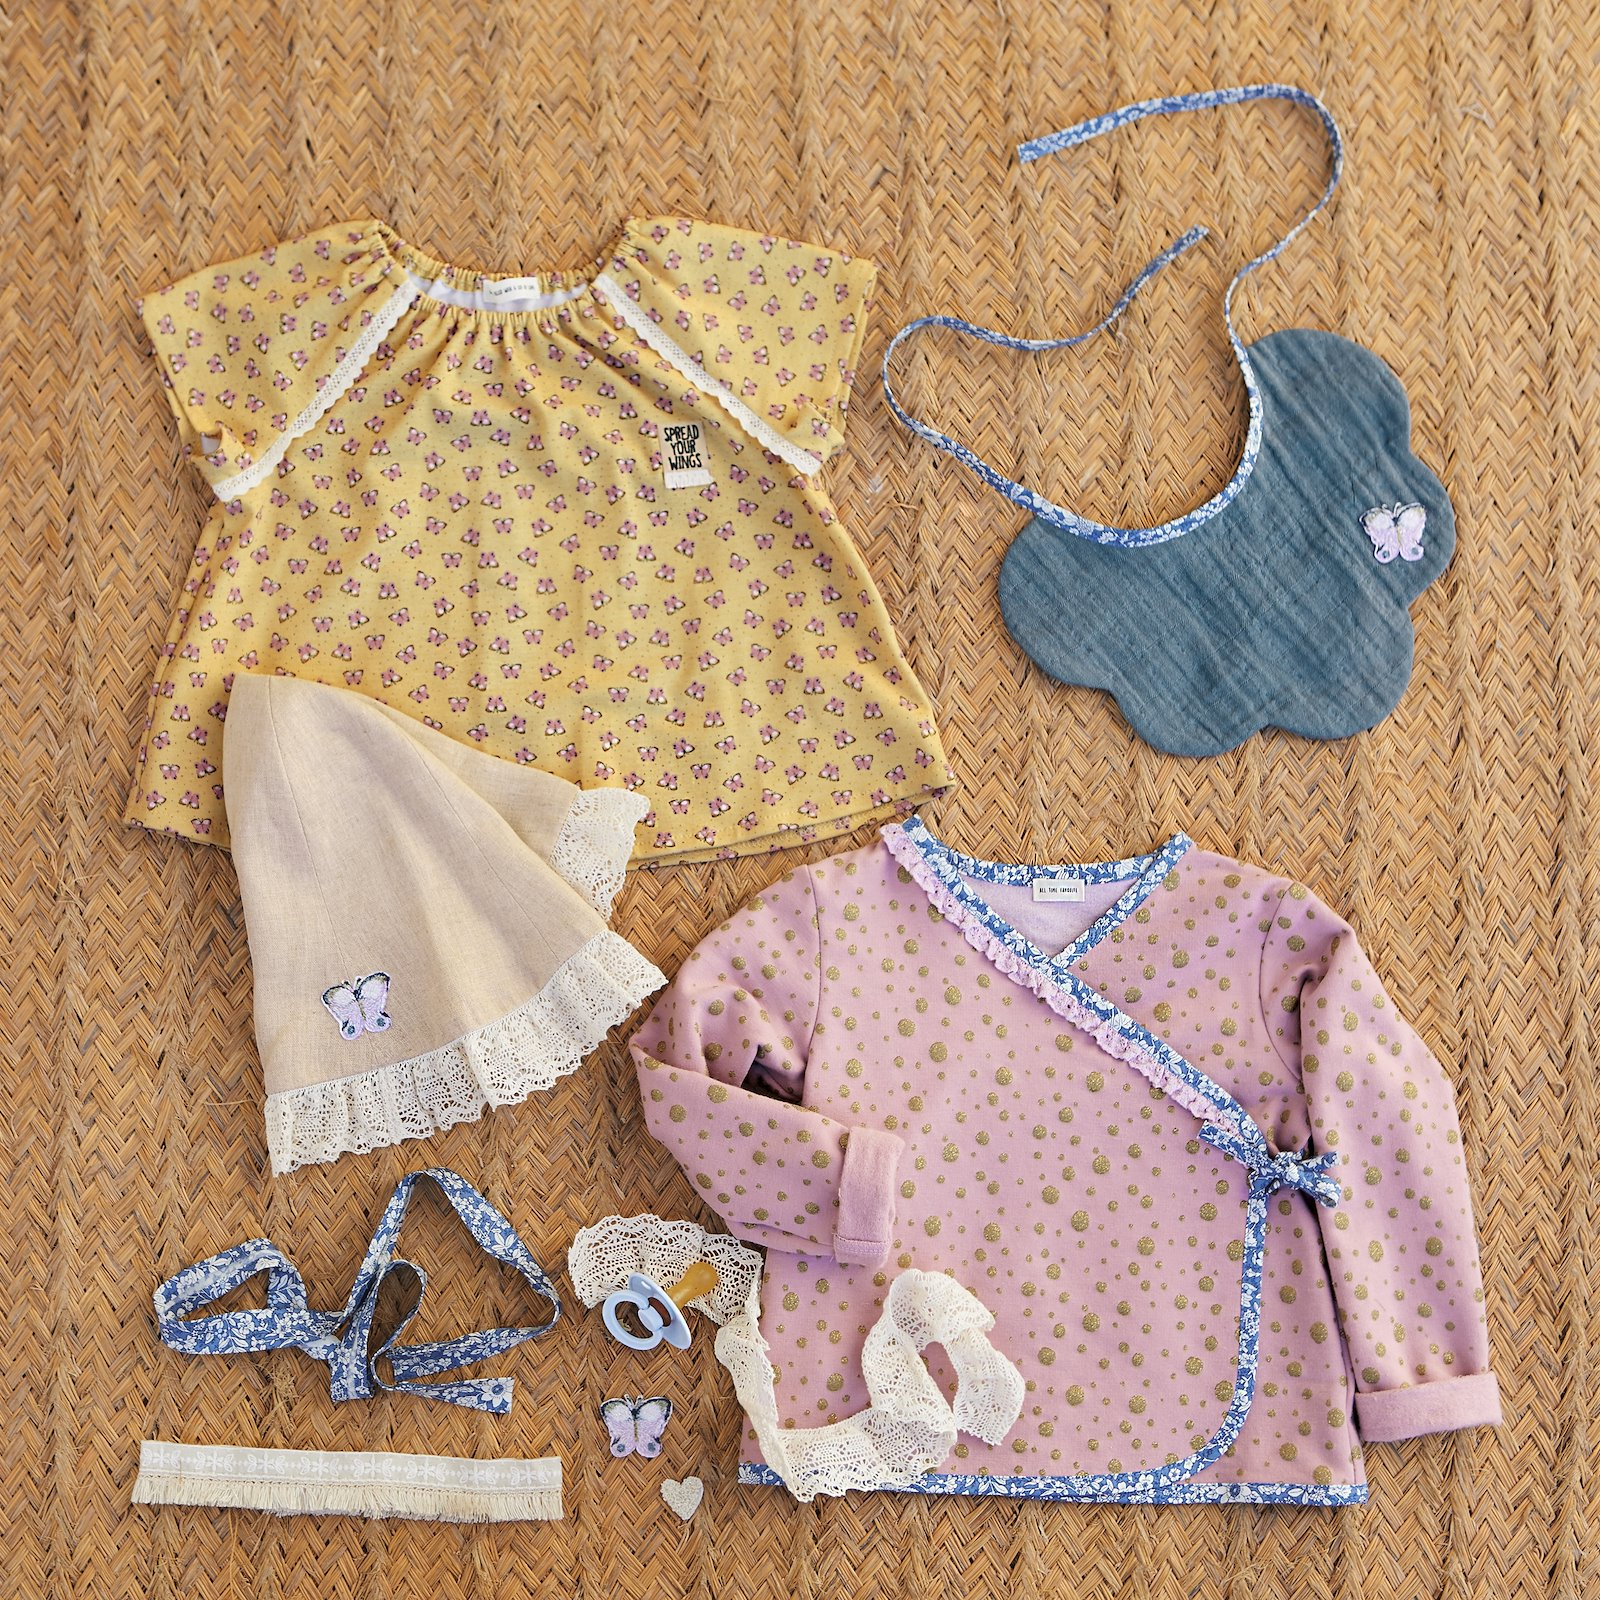 Baby sunhat and cloche p83013_272732_25105_26538_p84501_510258_25160_26538_bundle